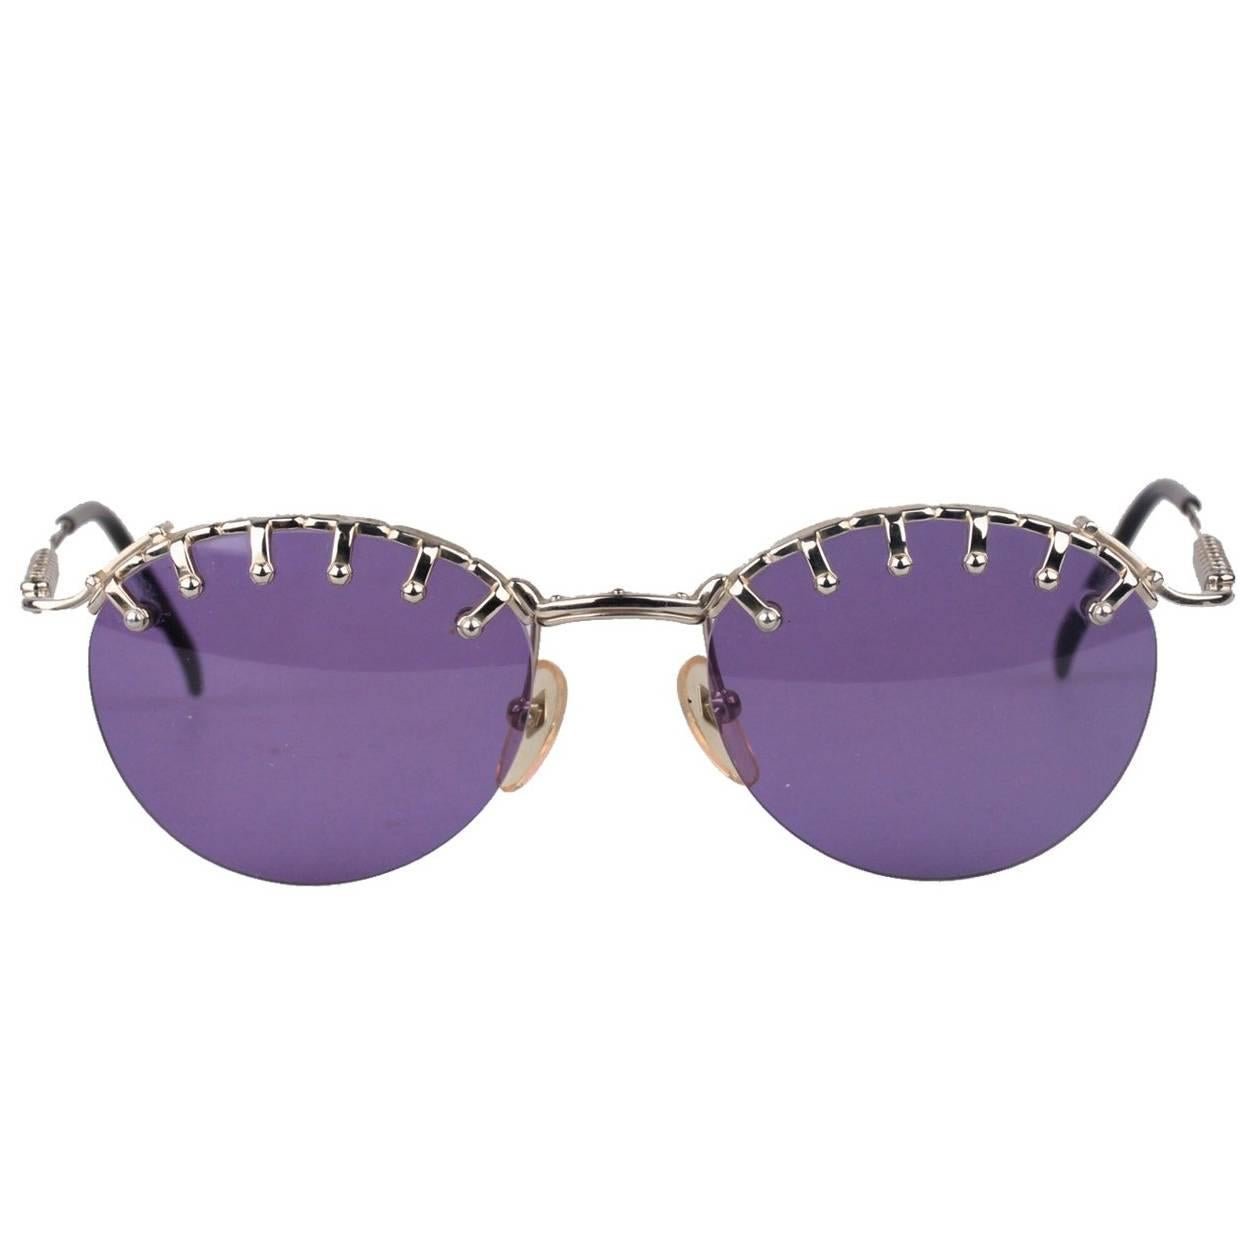 7aa663629ff Jean Paul Gaultier 56-8171 Silver Sunglasses For Sale at 1stdibs